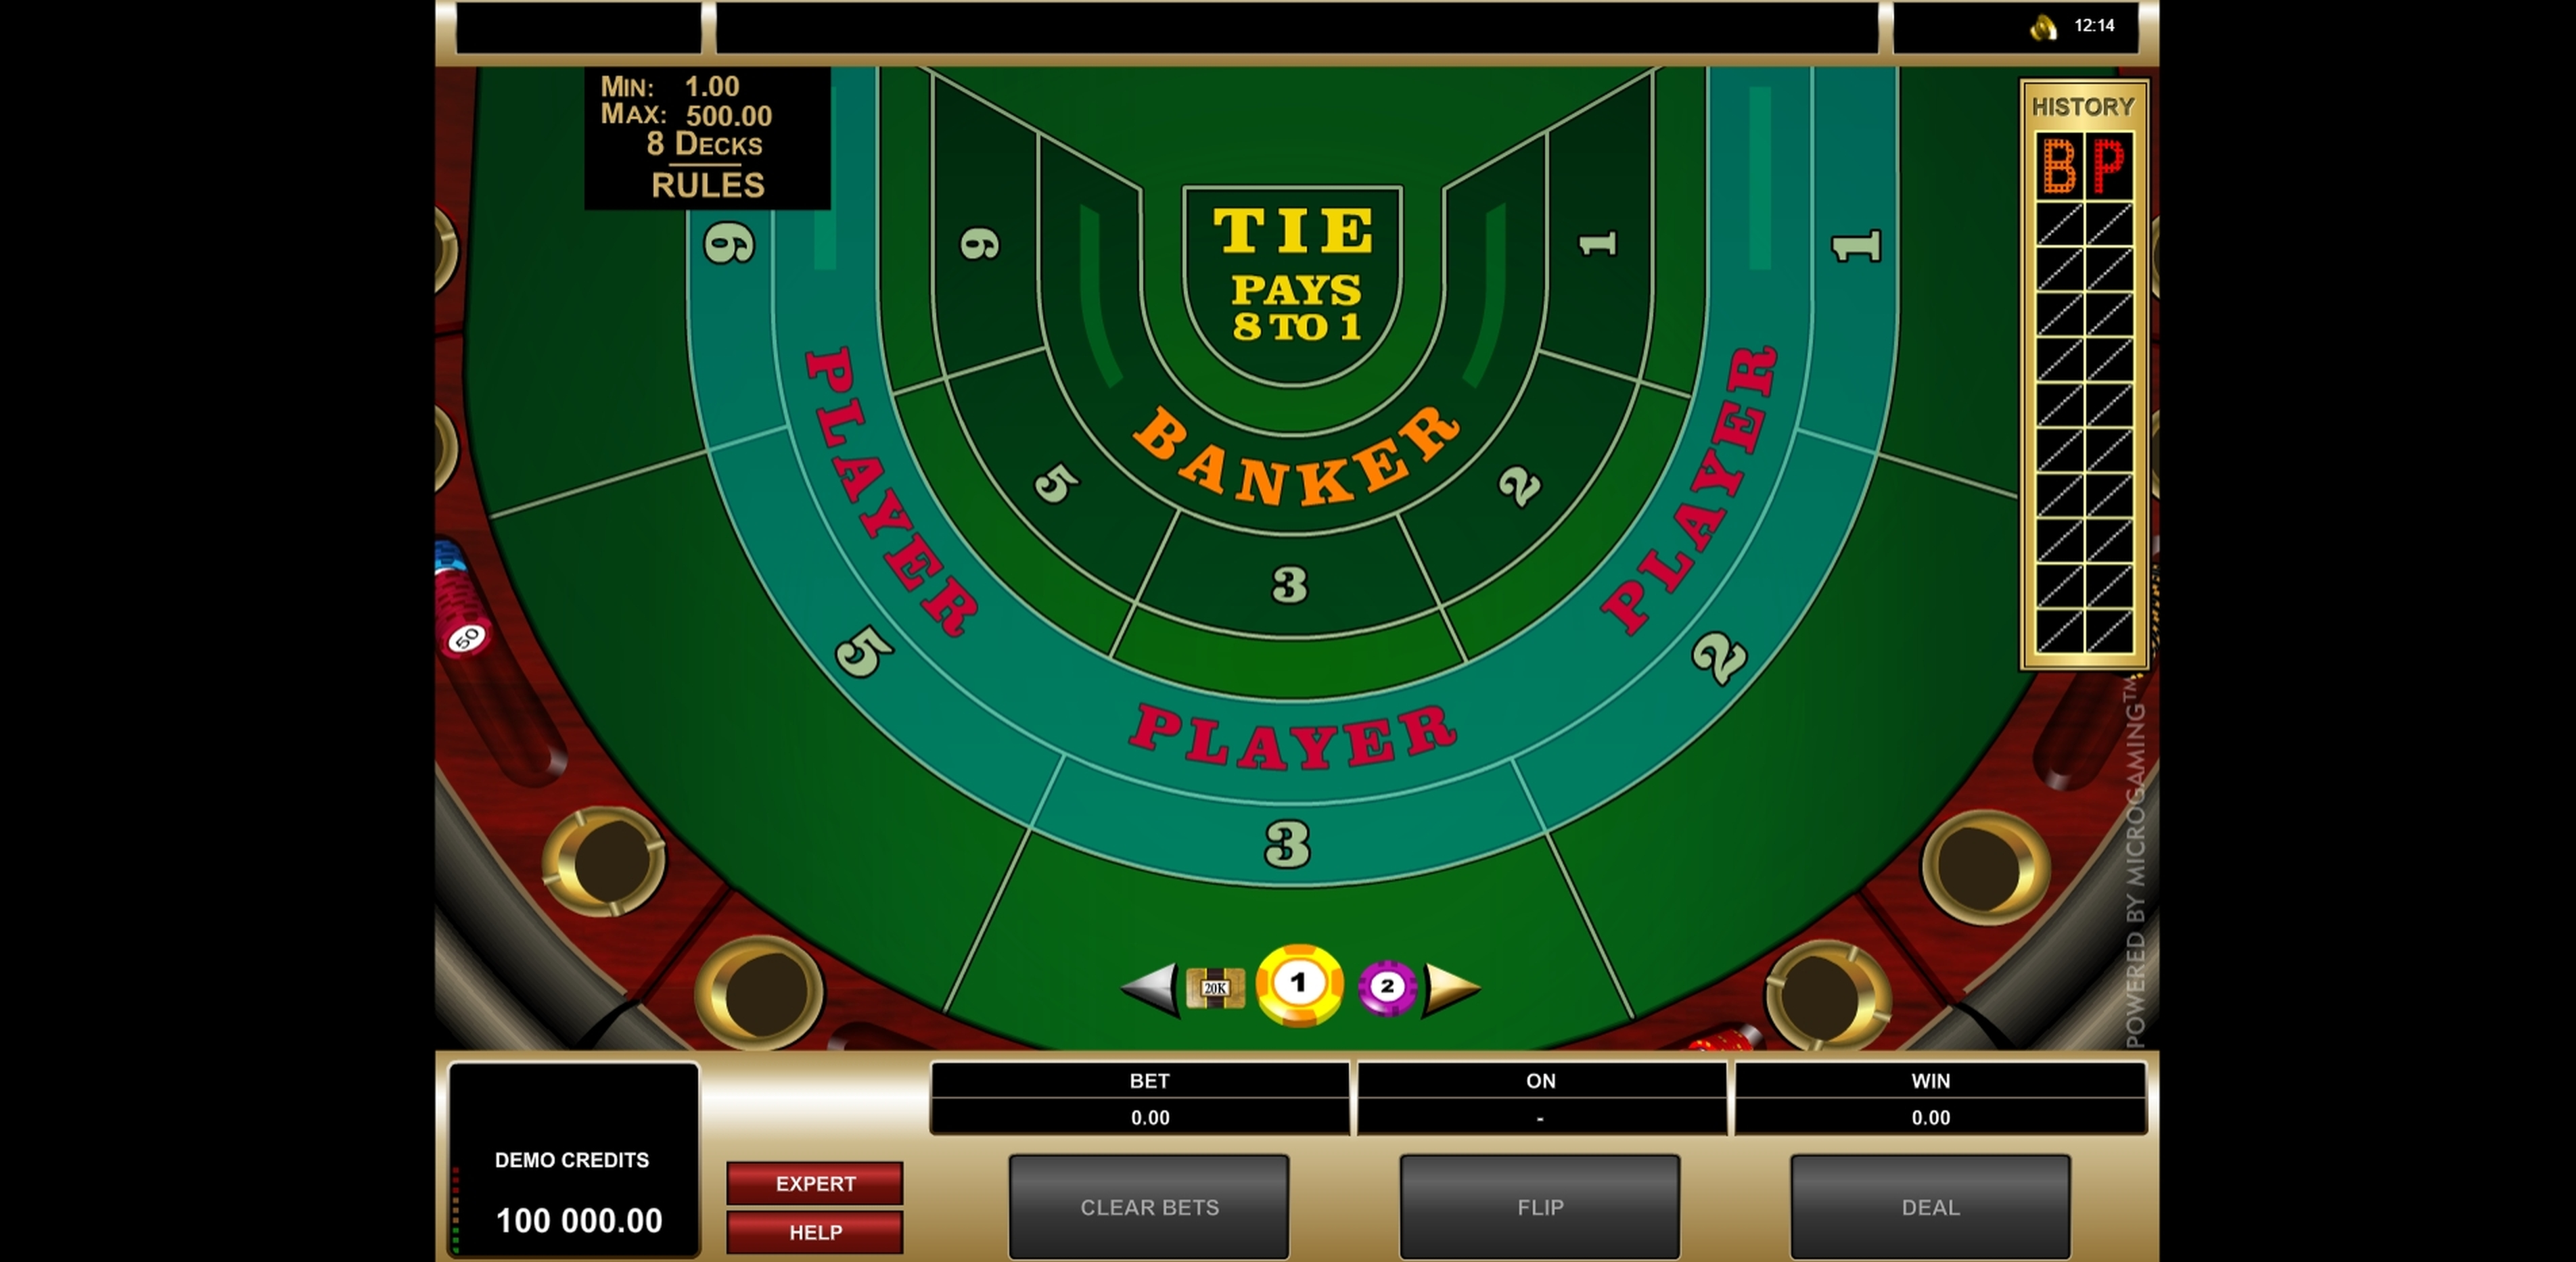 Reels in High Limit Baccarat (Microgaming) Slot Game by Microgaming